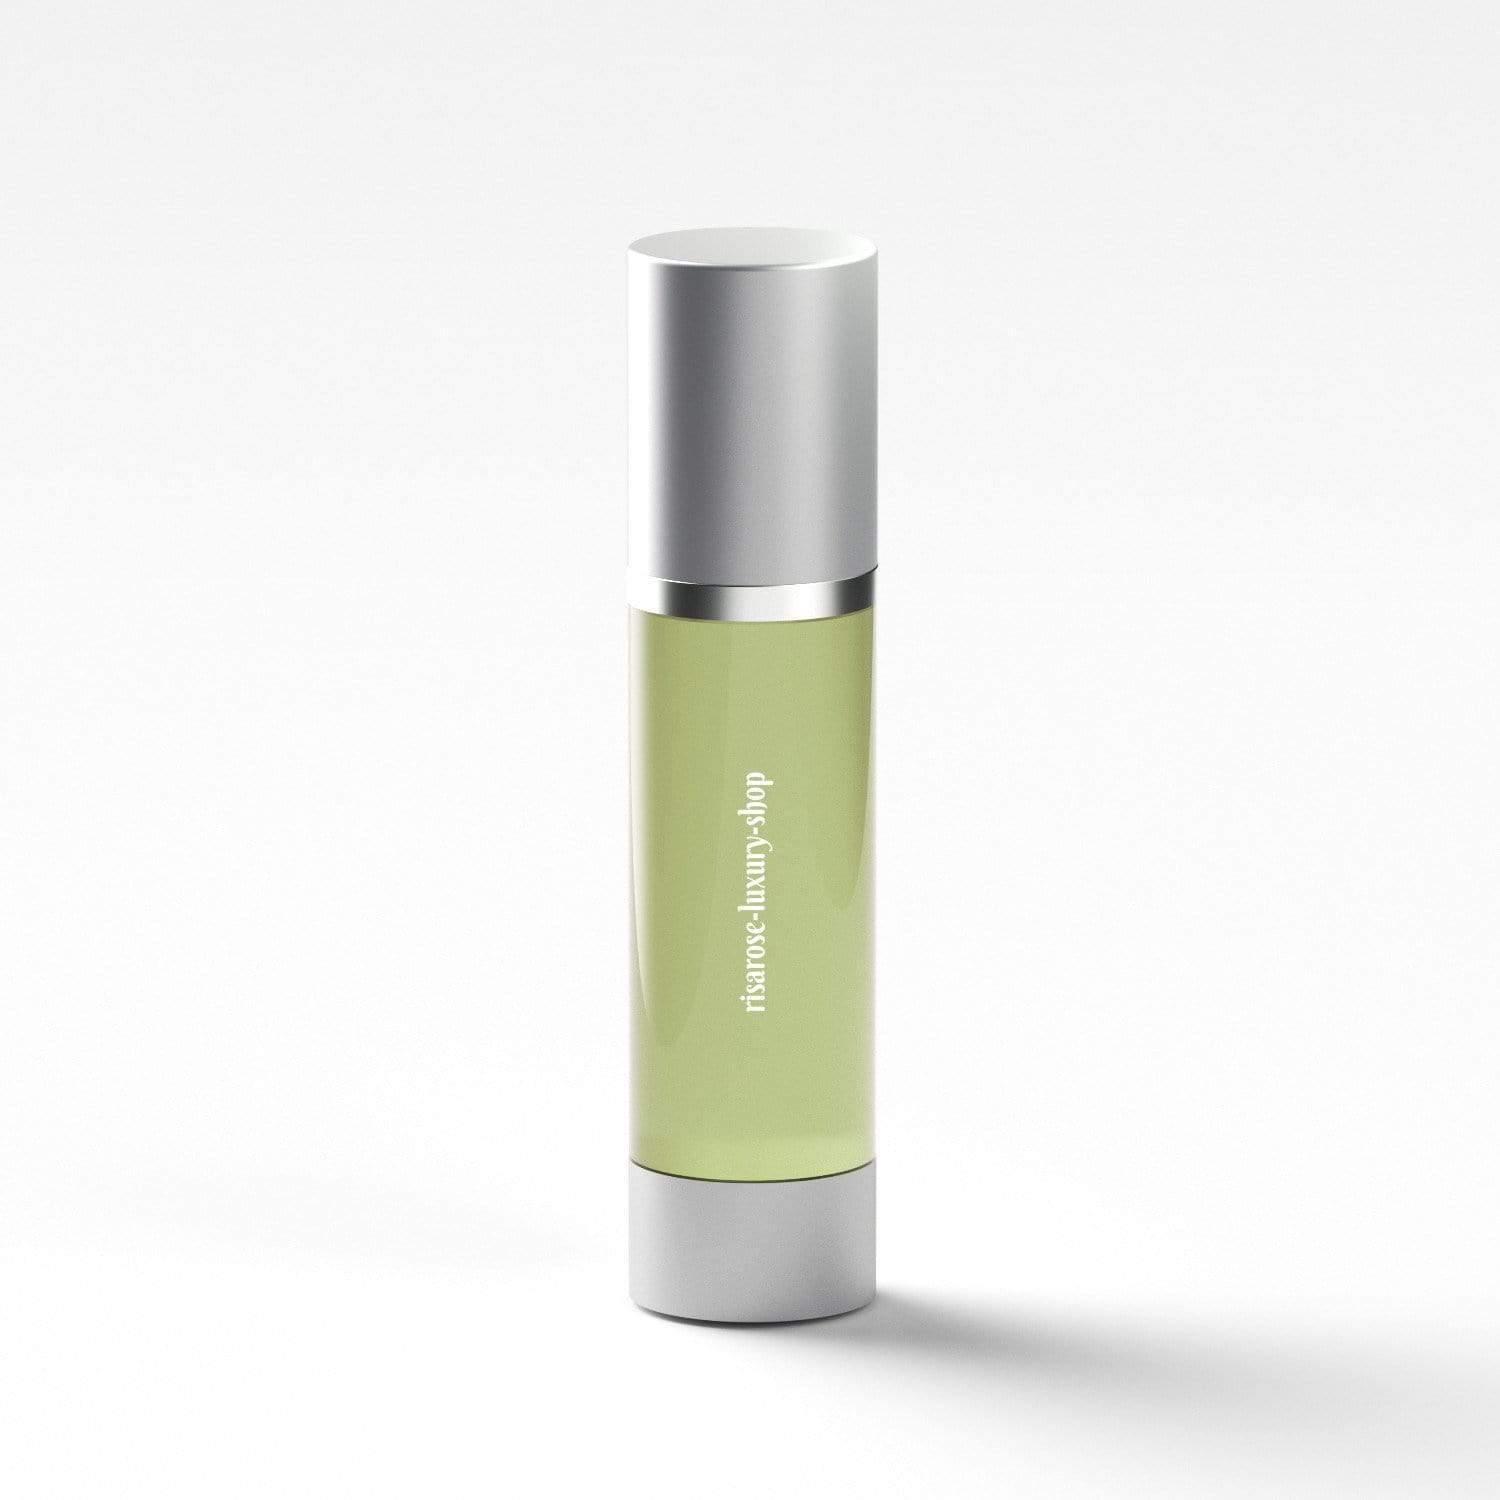 Reviving Eucalptus Mist - RisaRose Luxury Shop